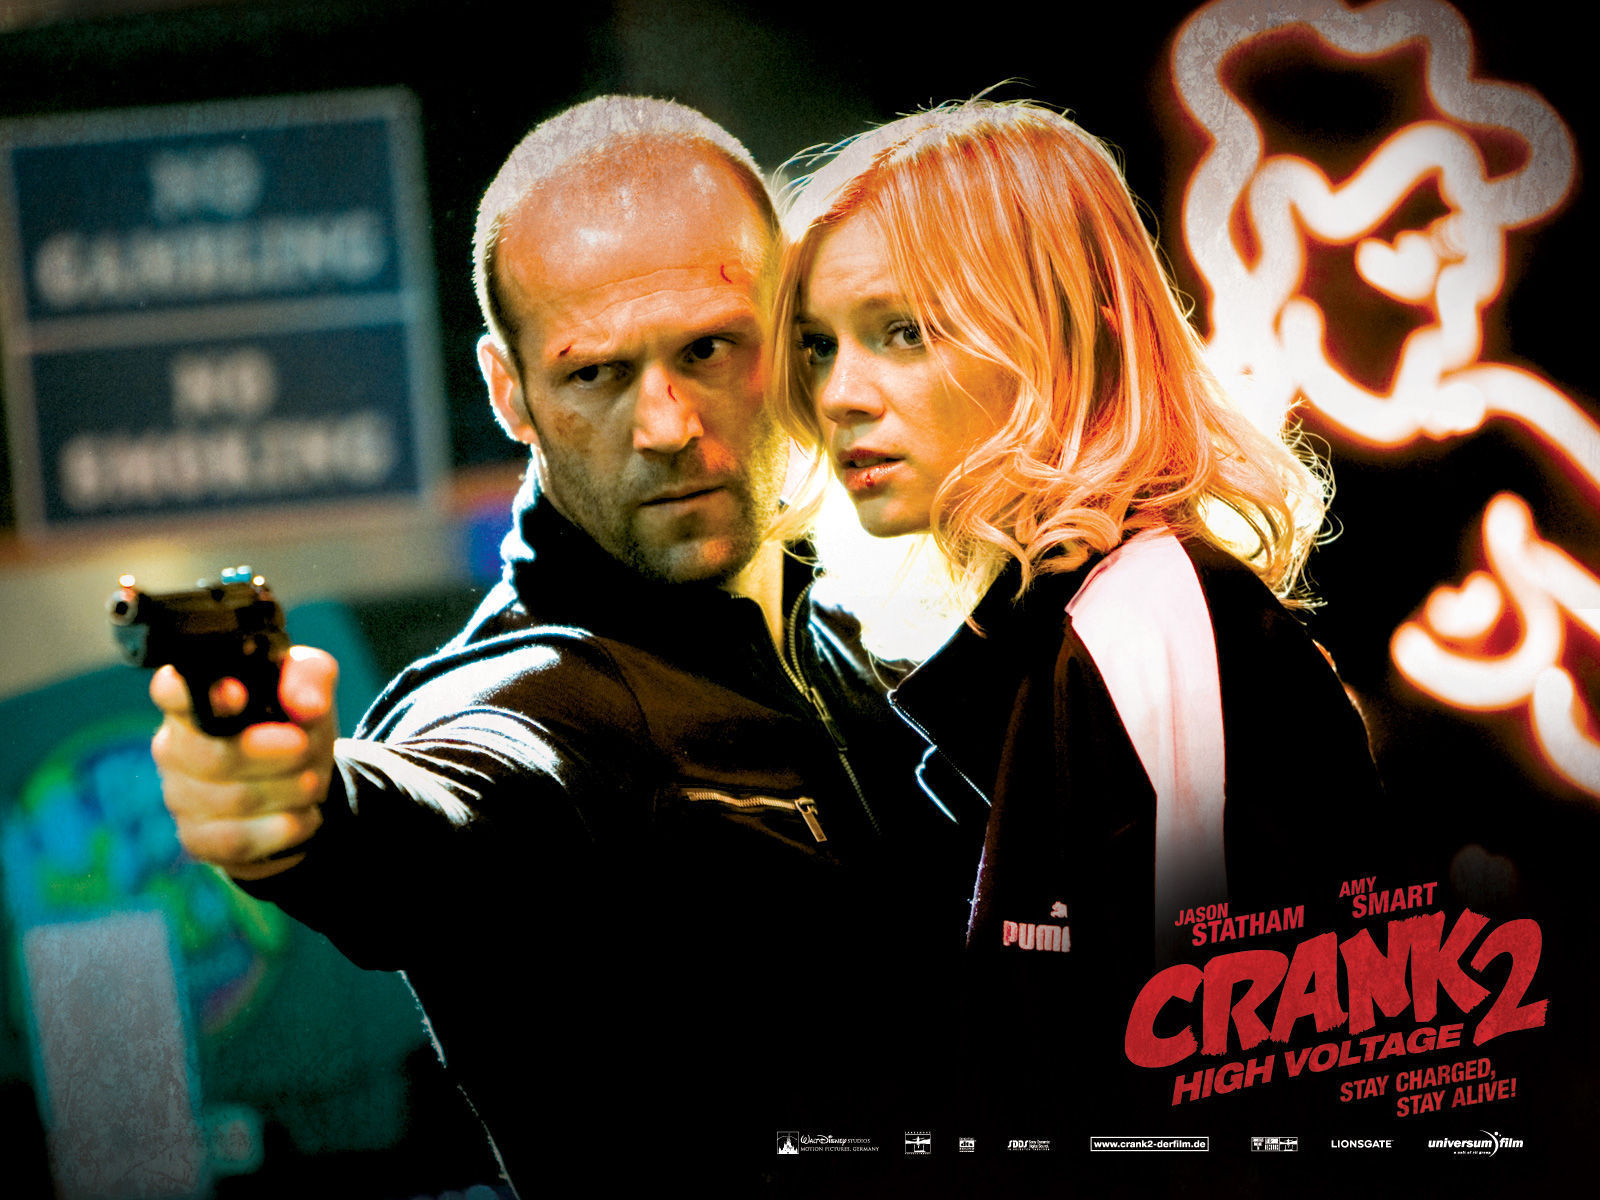 Crank 2: High Voltage - Action Films Wallpaper (15908837 ...